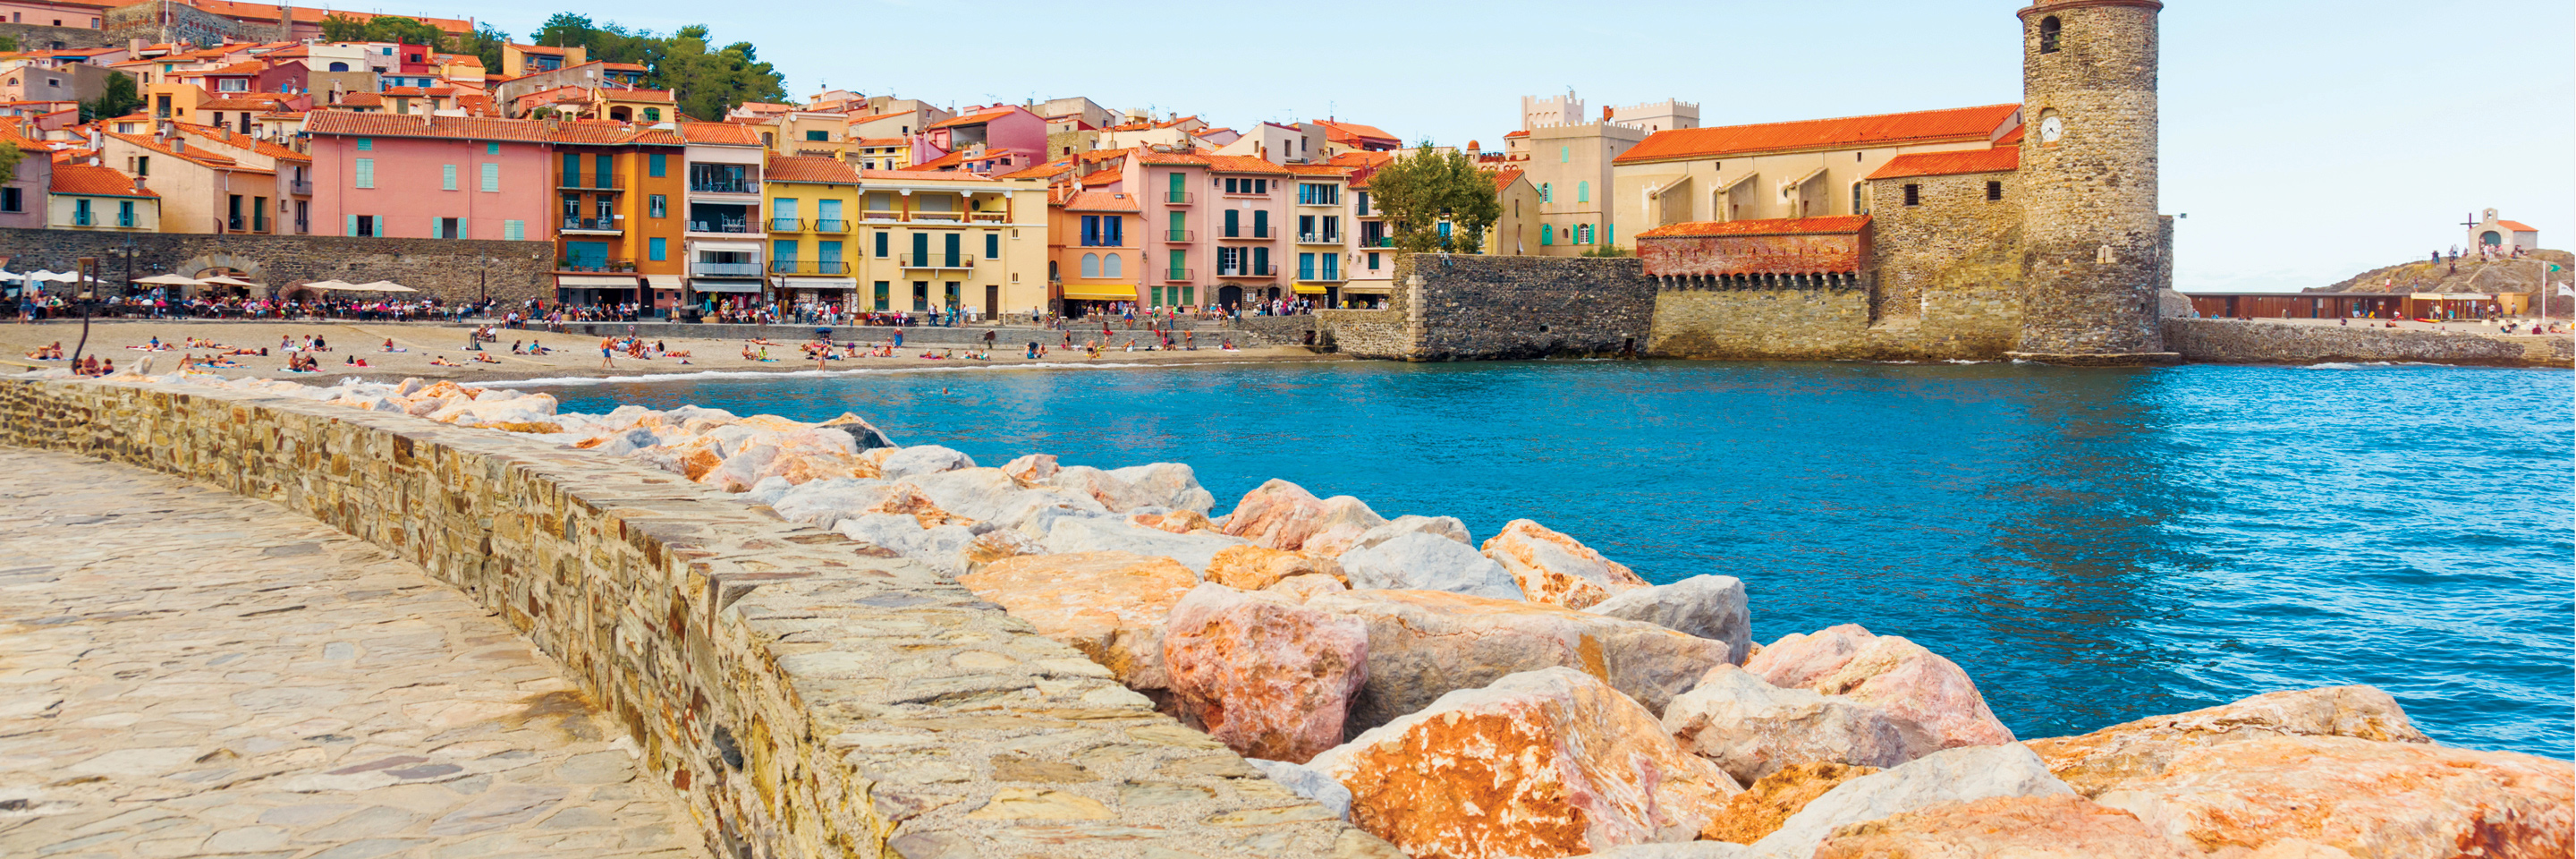 Undiscovered Mediterranean Tours with Cosmos